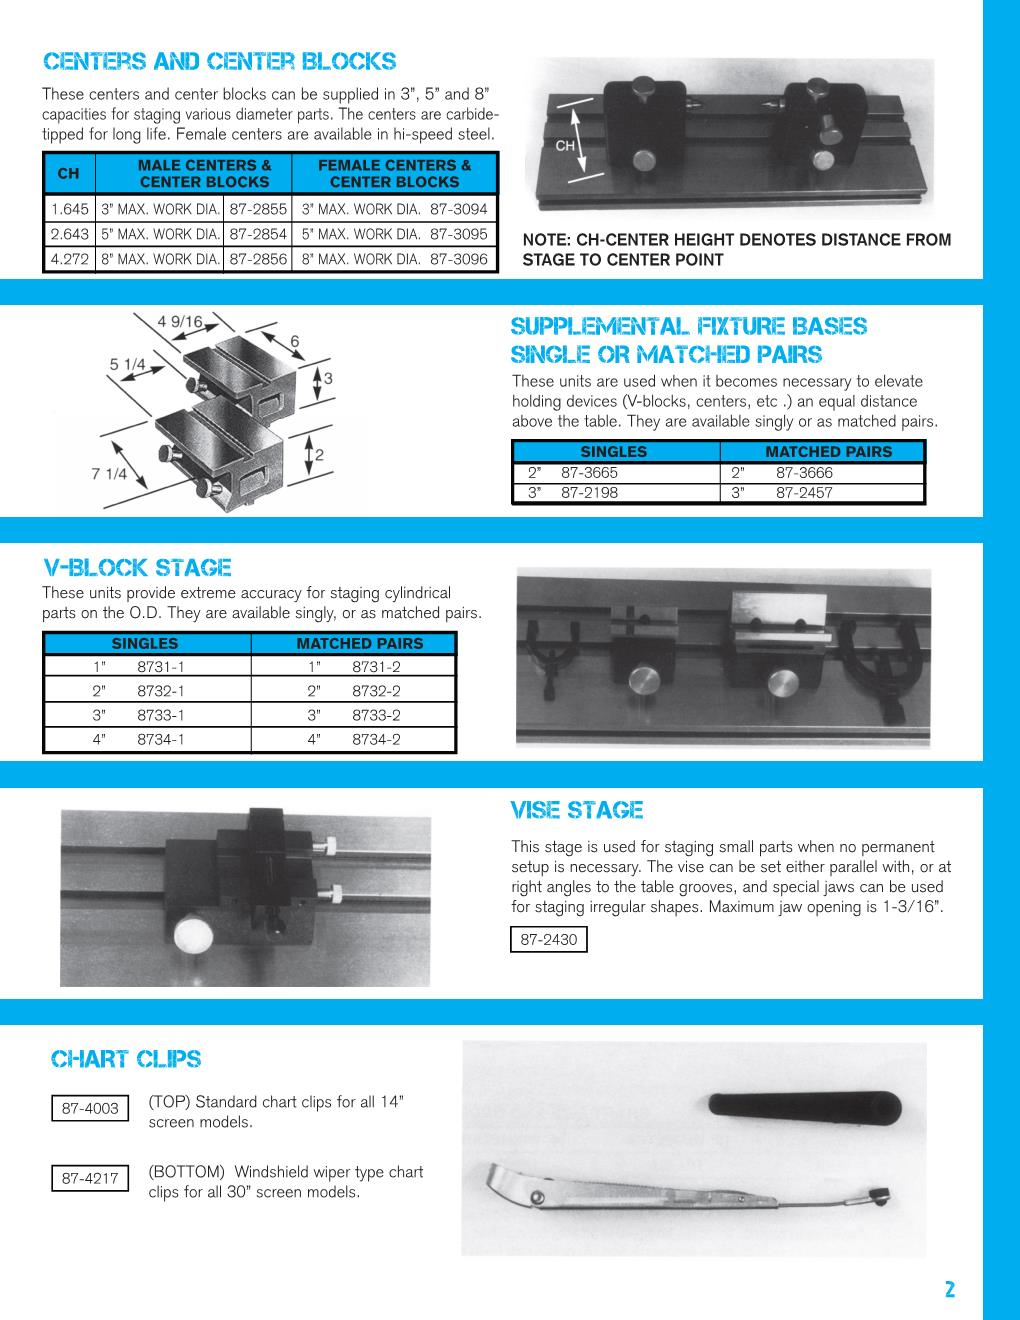 Unlimited Services Chart & Fixture Catalog 12.2018 FINAL Page 003.jpg